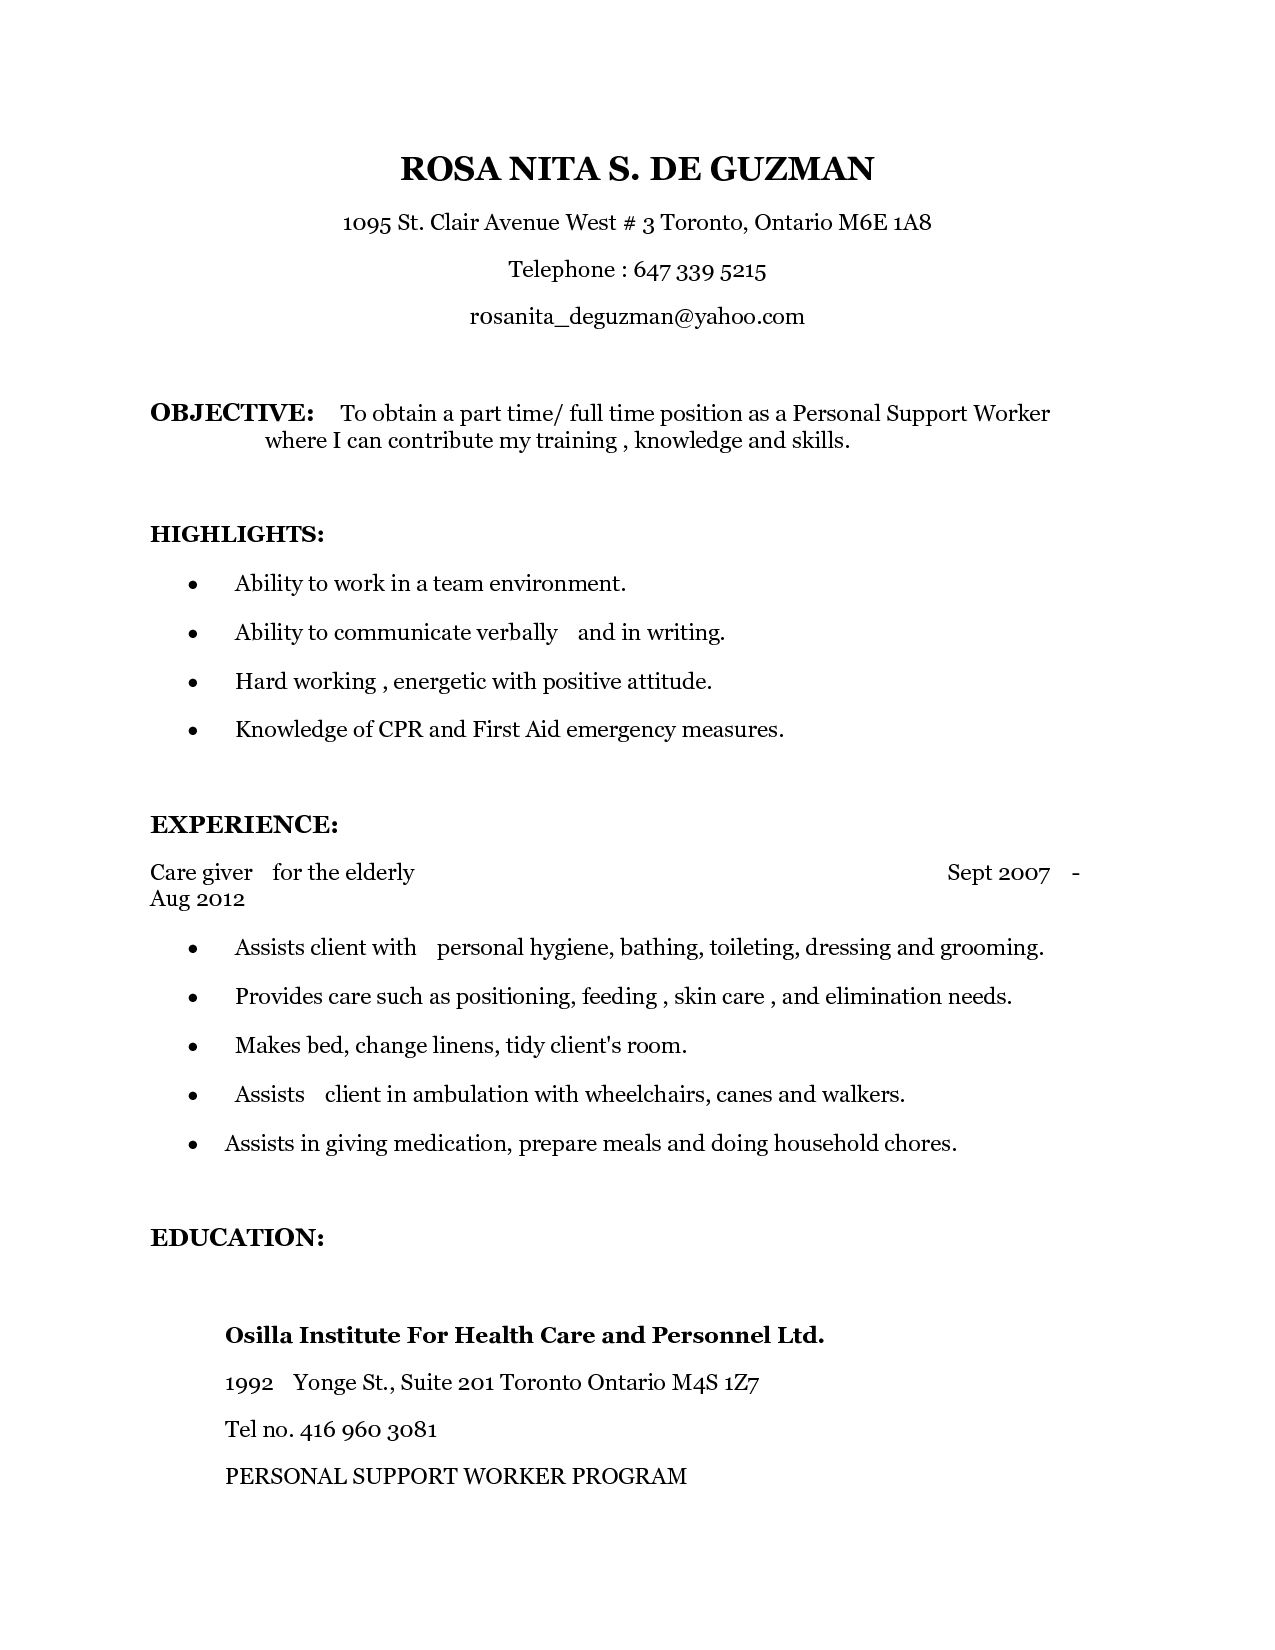 pin on resume templates cover letter for psw full documentation of builder project Resume Cover Letter For Psw Resume